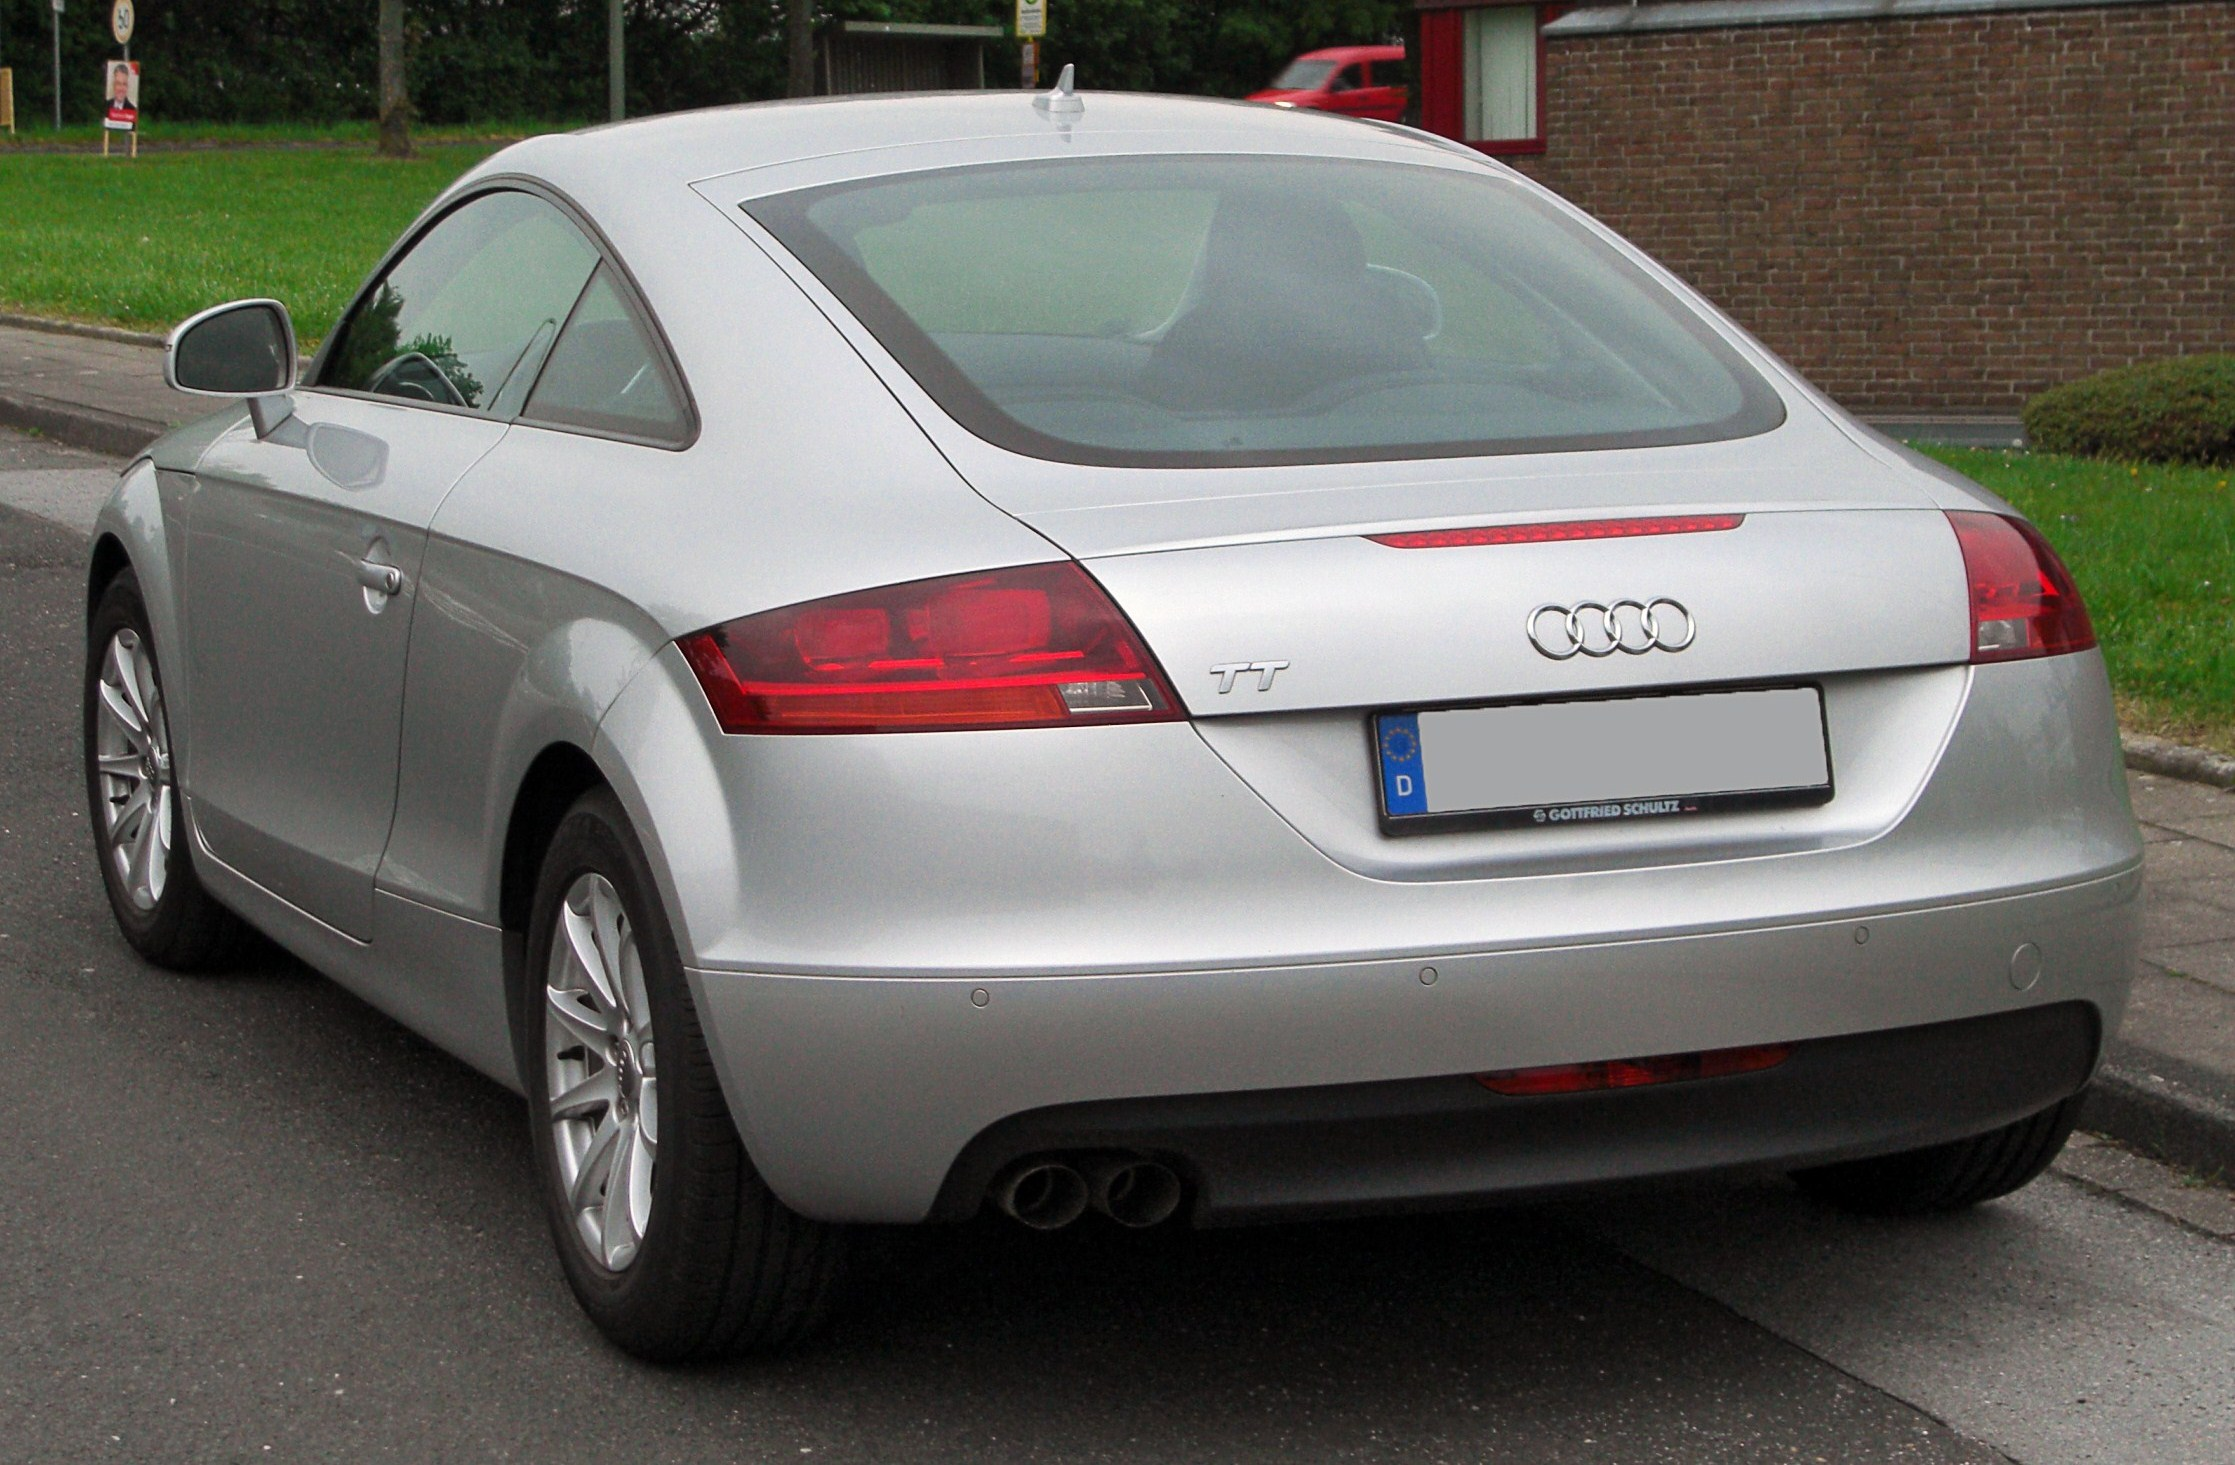 2013 Audi Tt roadster (pq35,36) - pictures, information and specs - Auto-Database.com